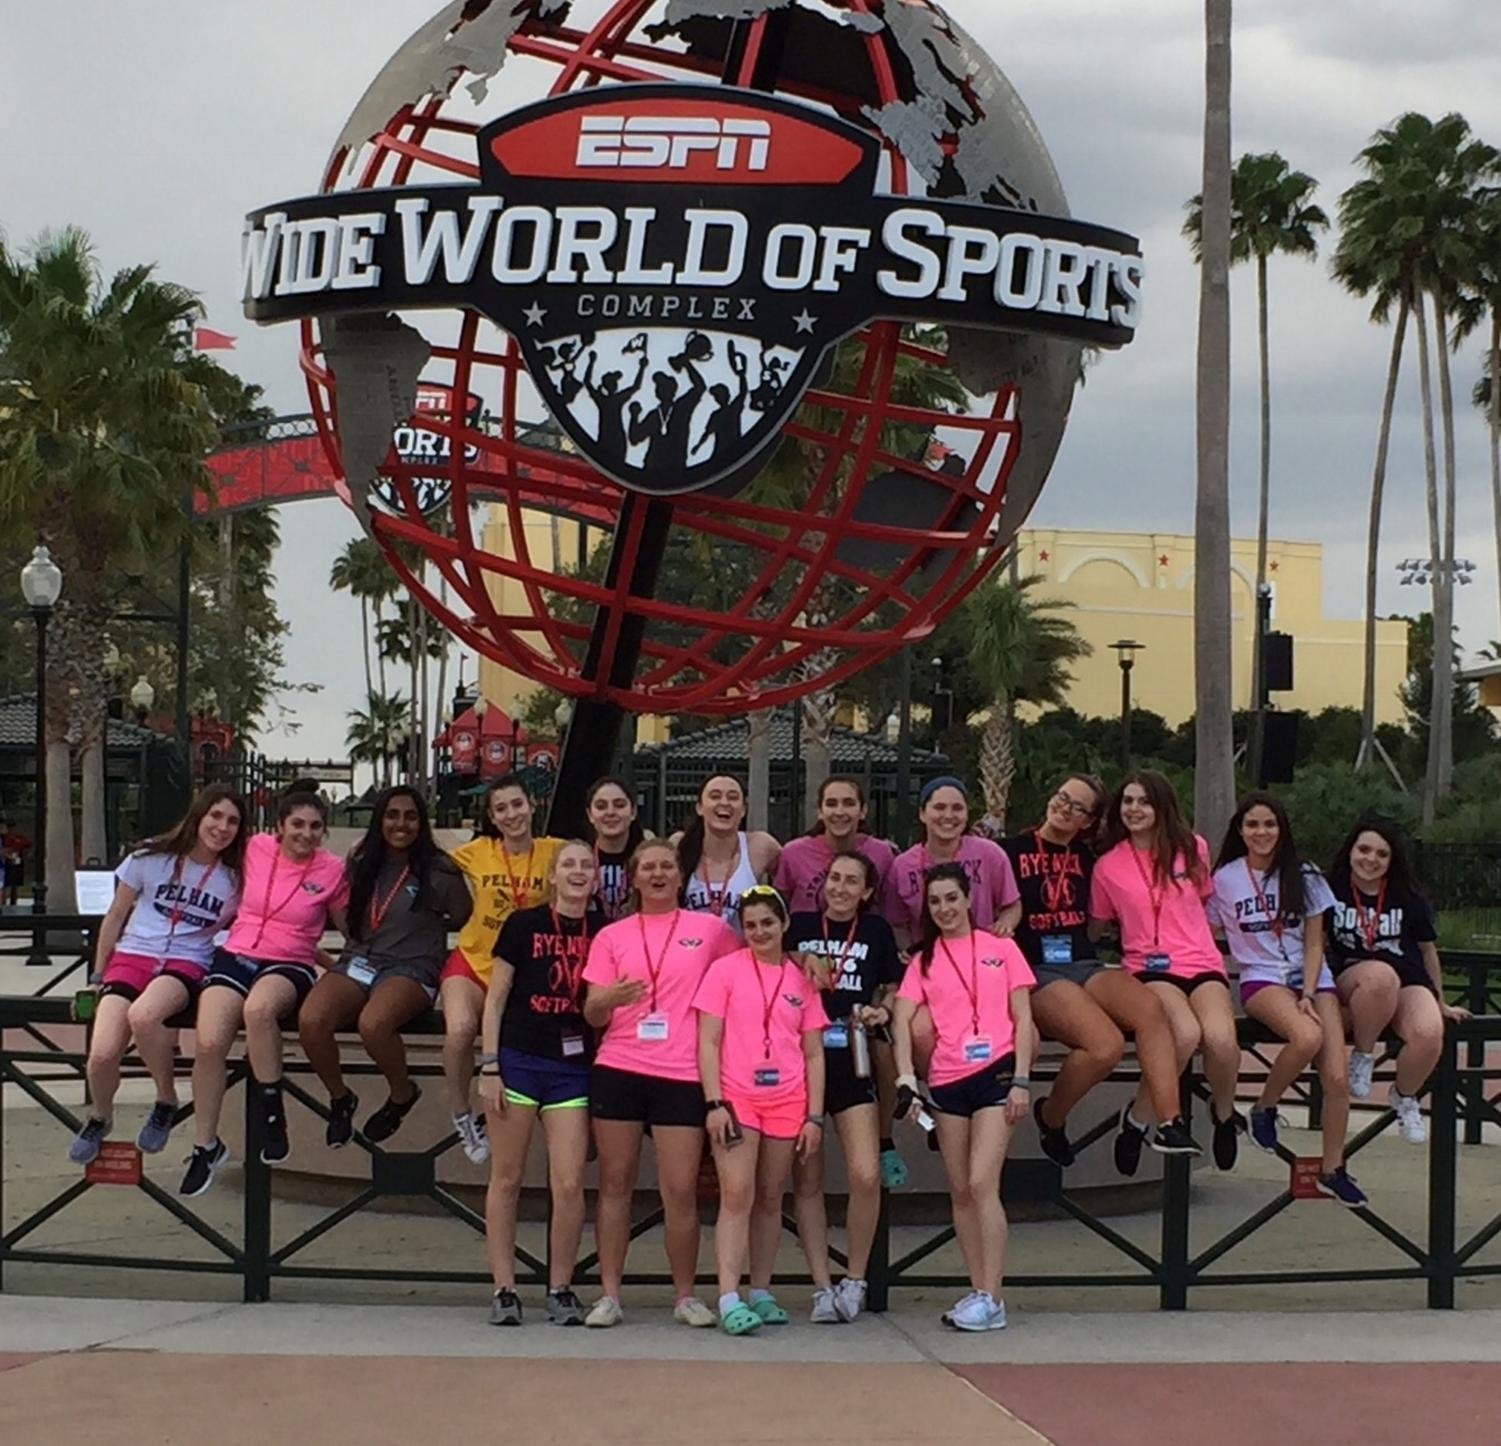 The varsity girls softball team gathers in front of the sports complex at Disney World.